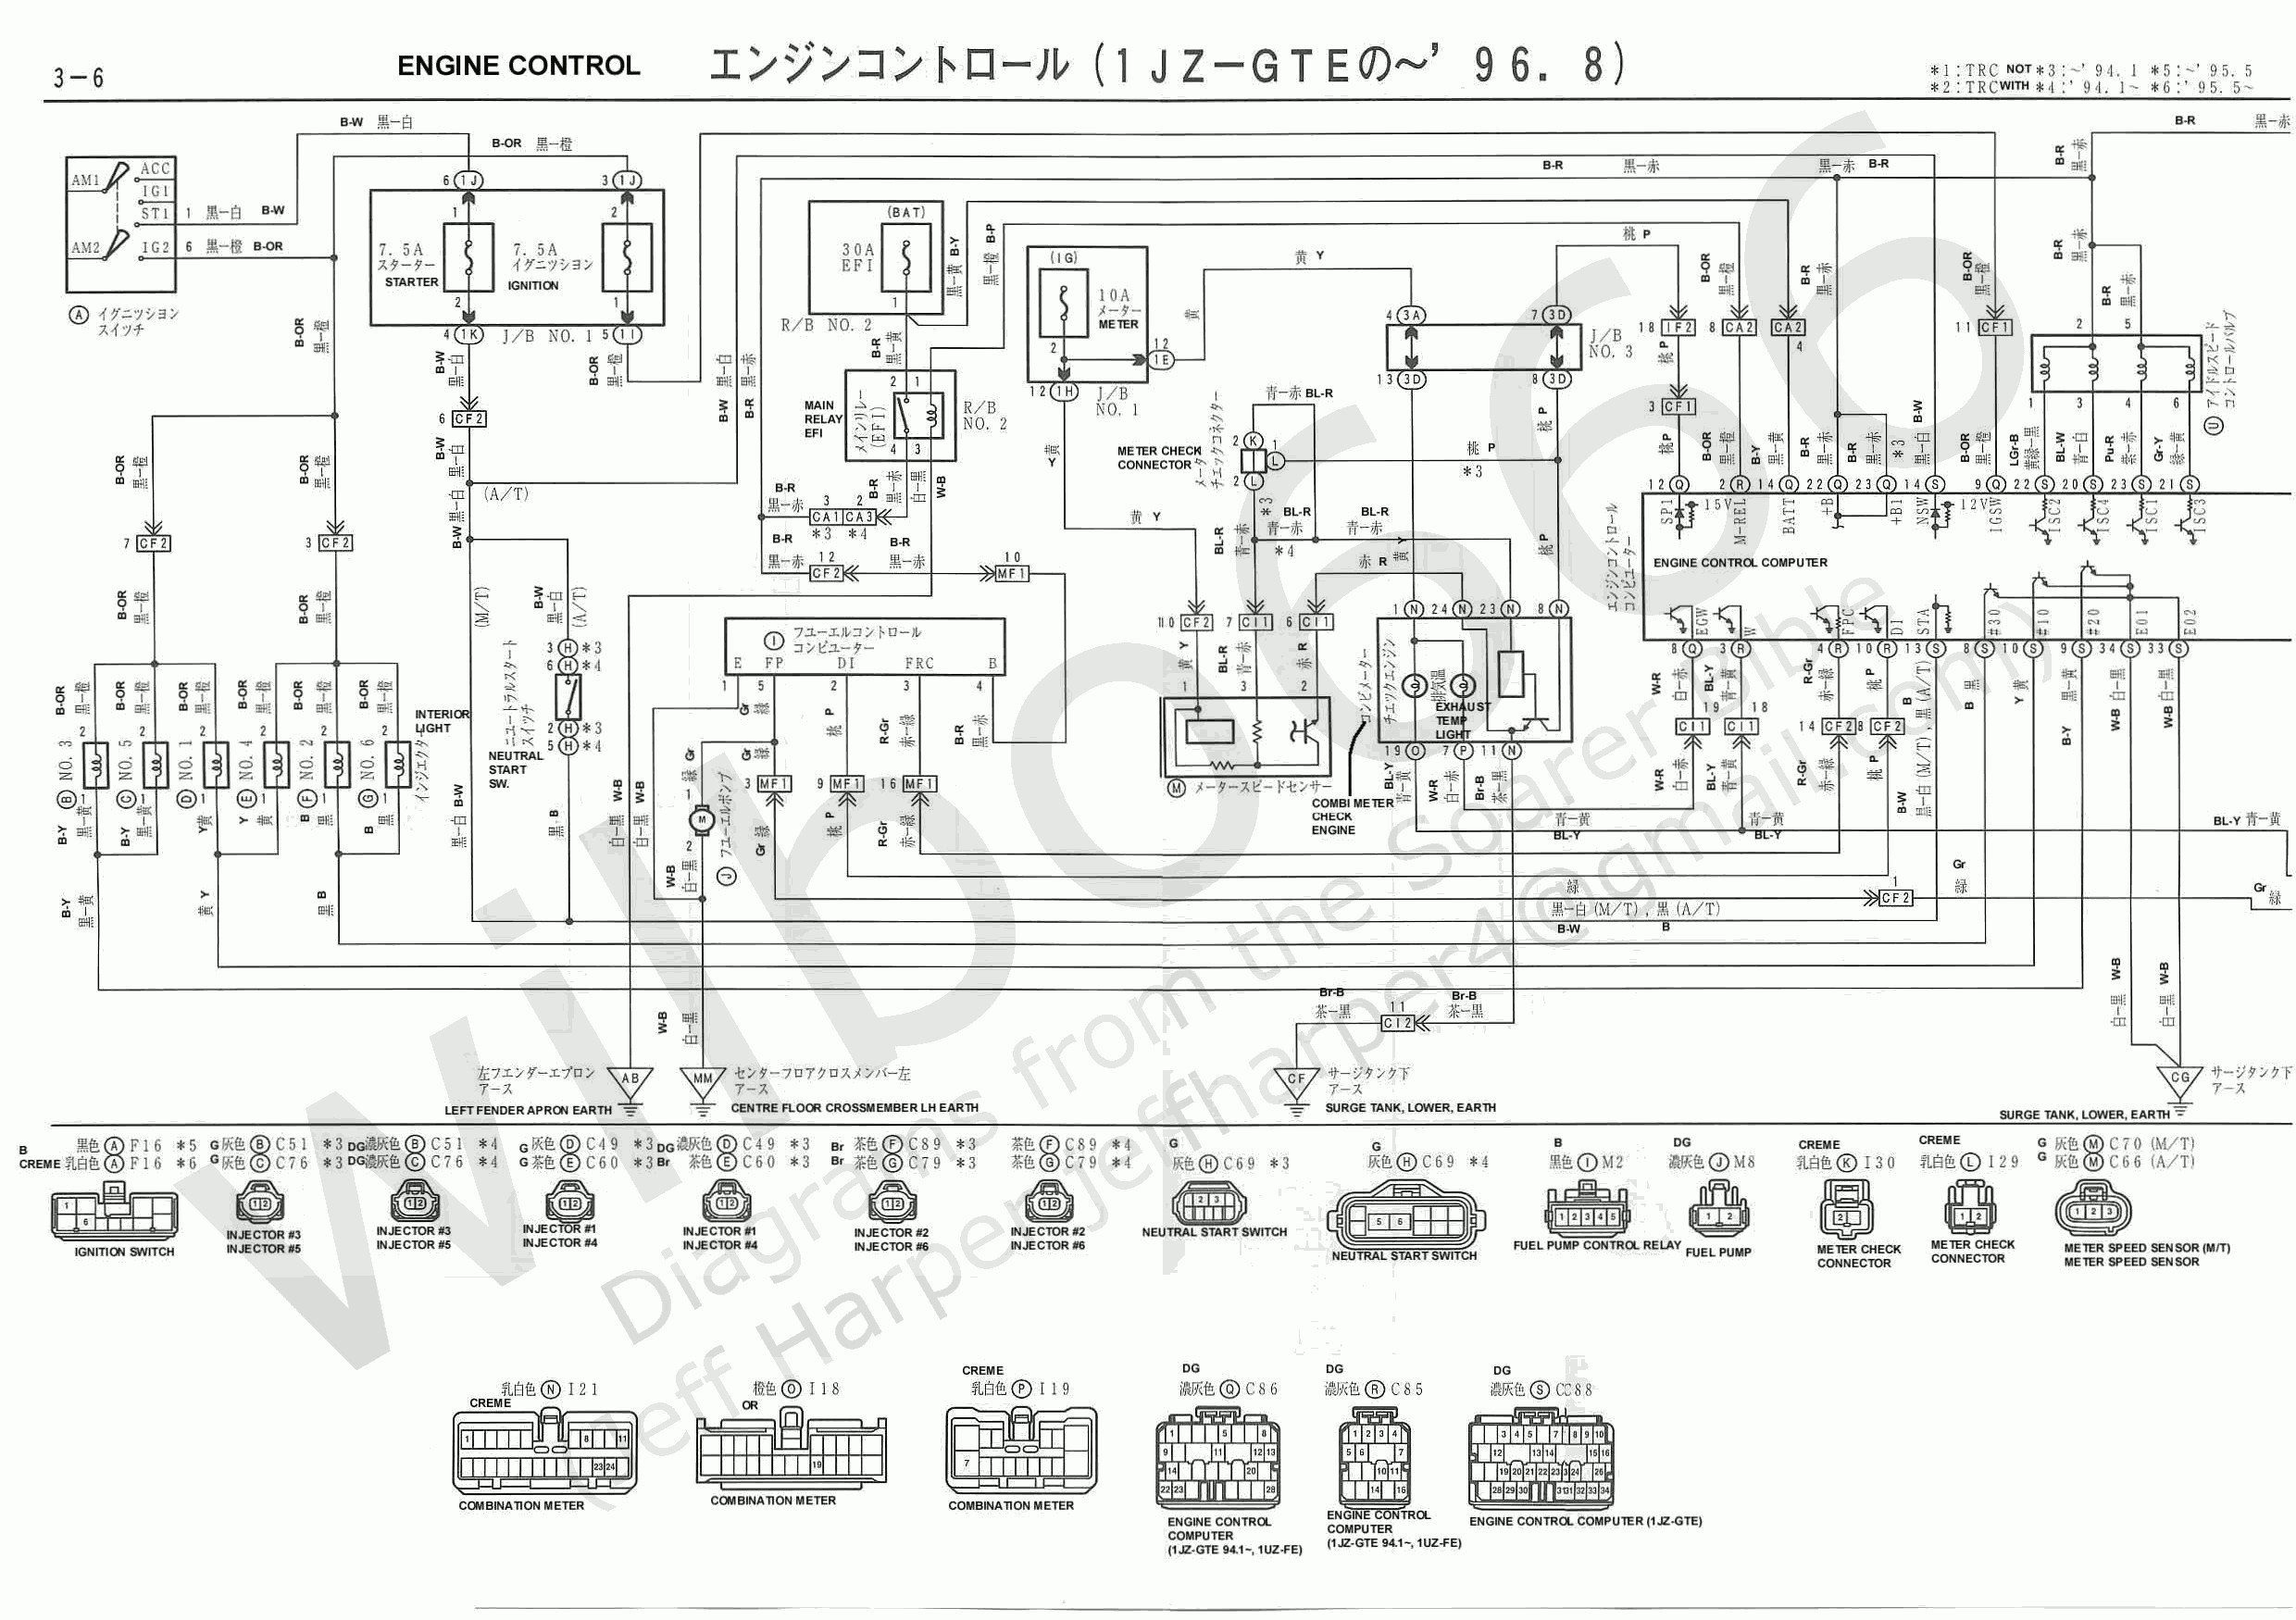 1jz Engine Wiring Diagram Wilbo666 [licensed for Non Mercial Use Only] Mirror 1jz Gte Of 1jz Engine Wiring Diagram